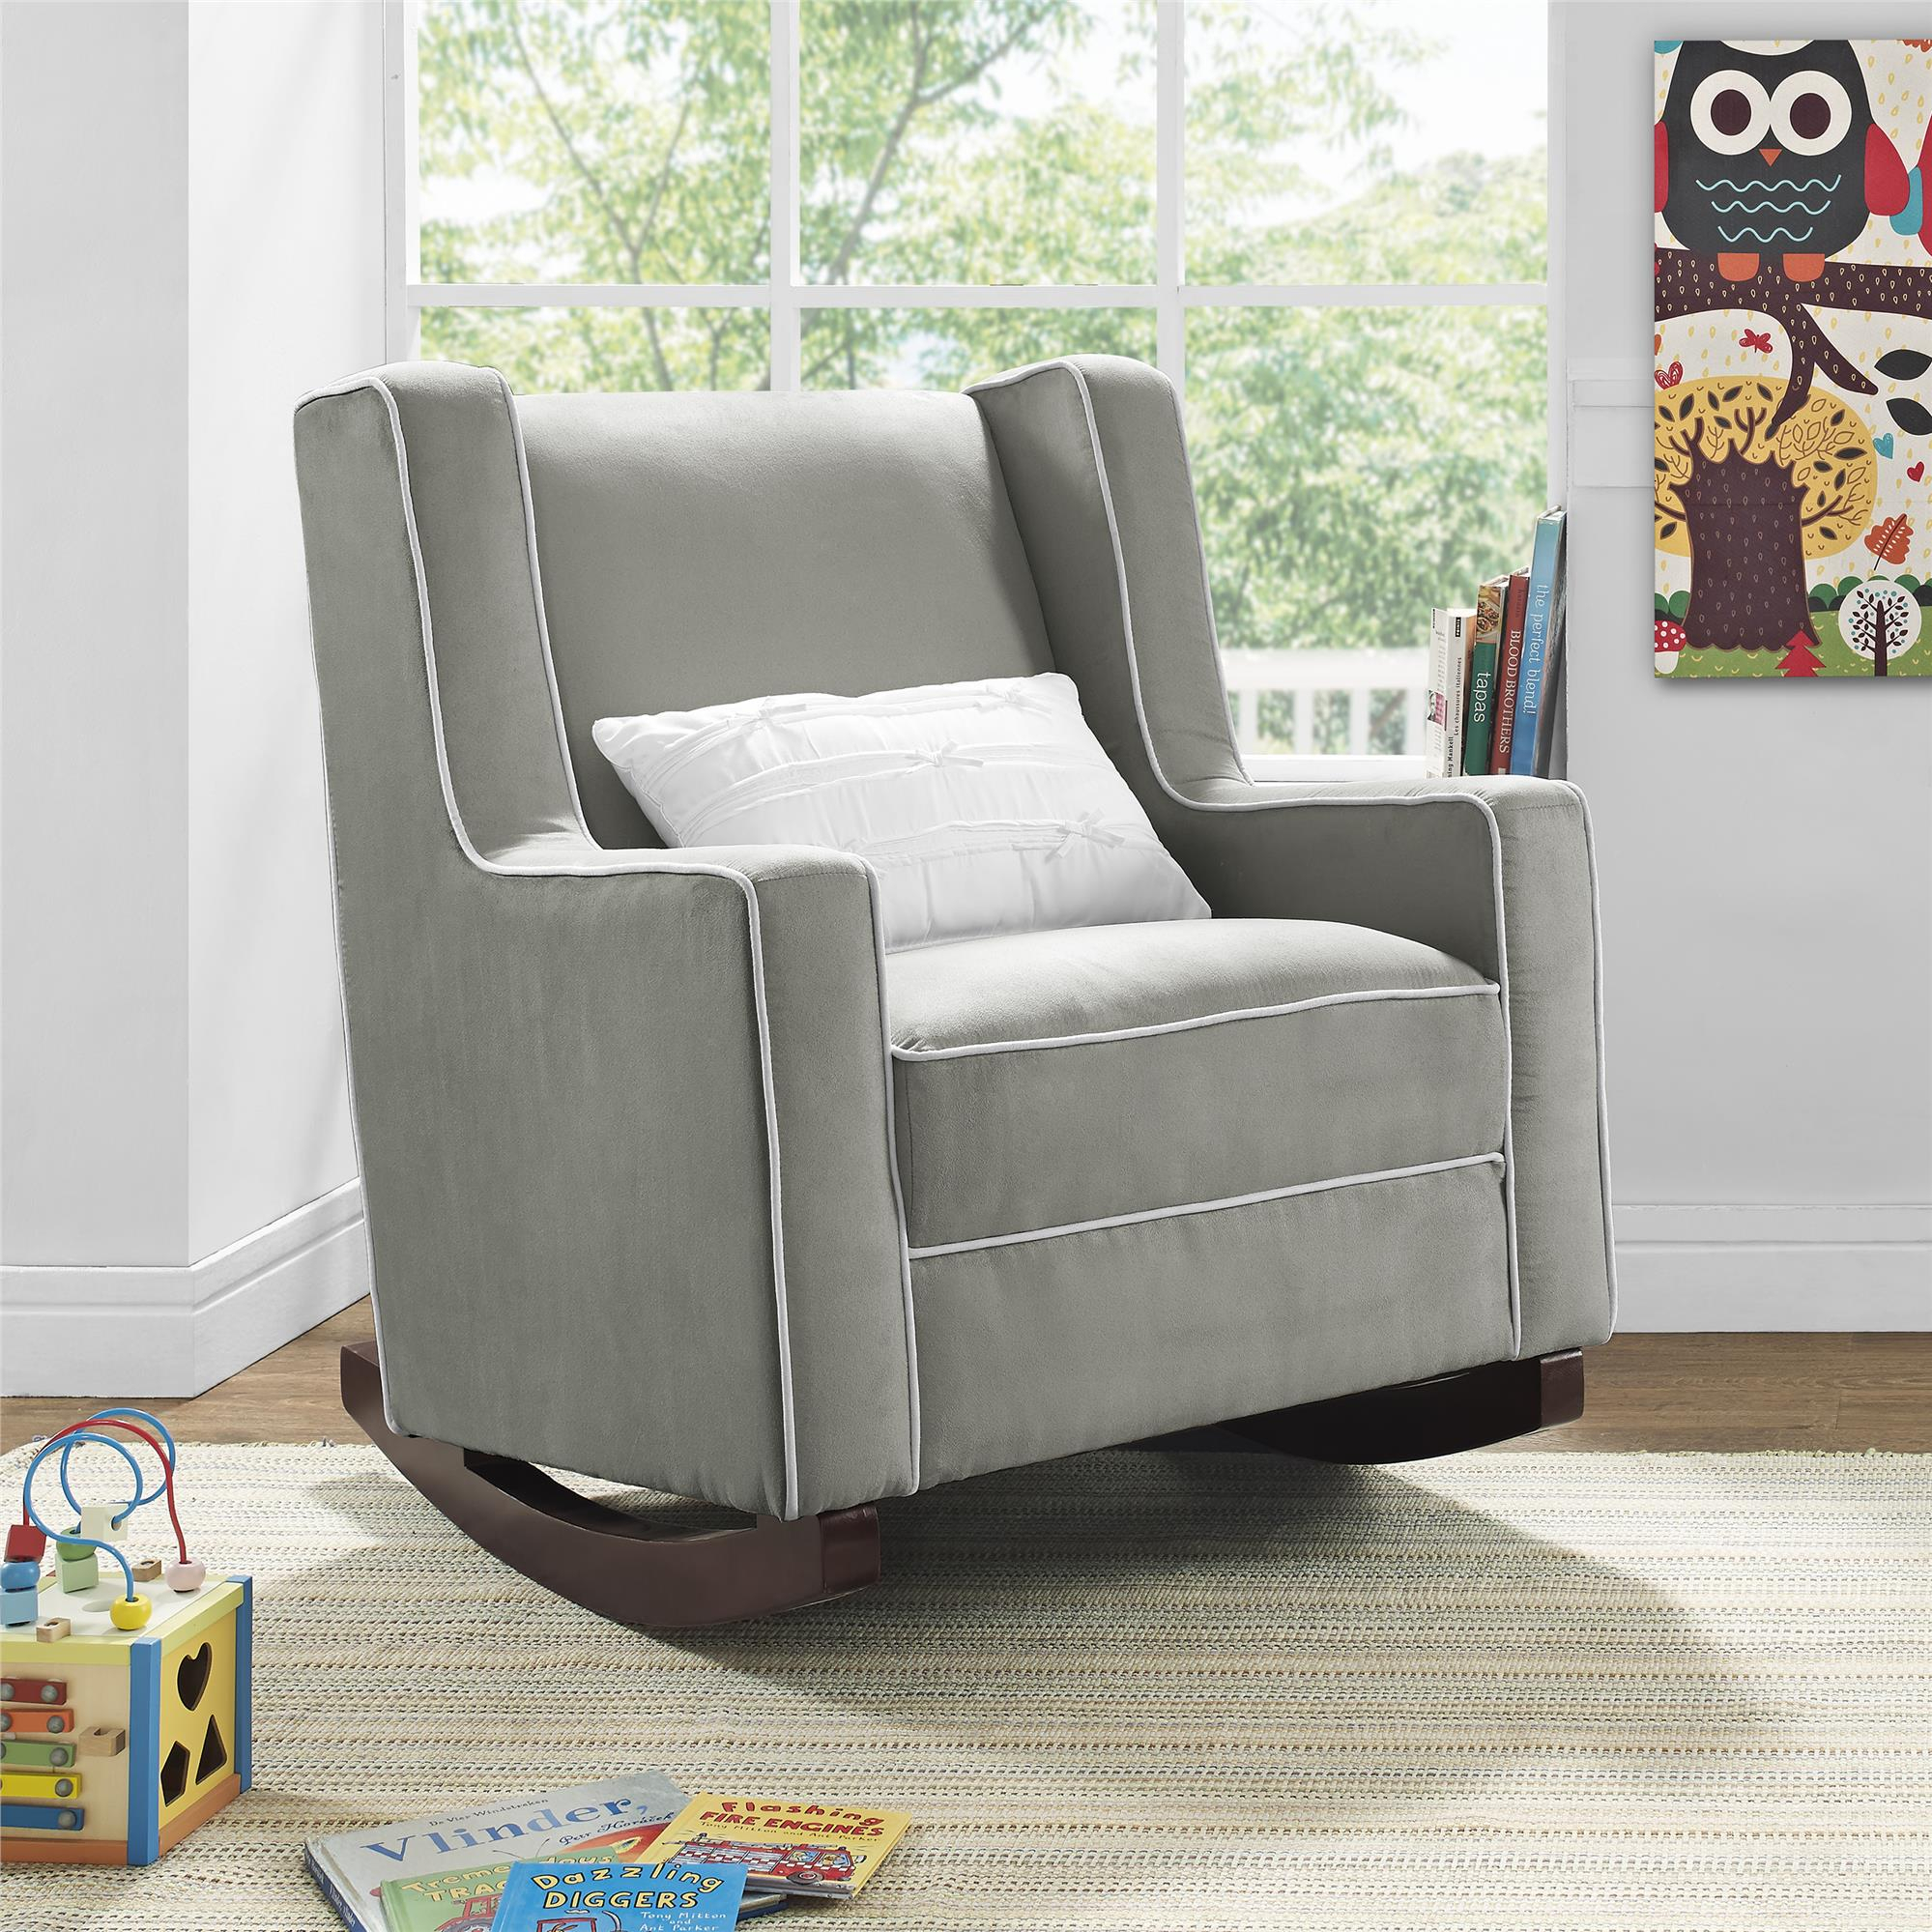 Dorel Living | Baby Relax Abby Rocker, Gray throughout Abbey Swivel Glider Recliners